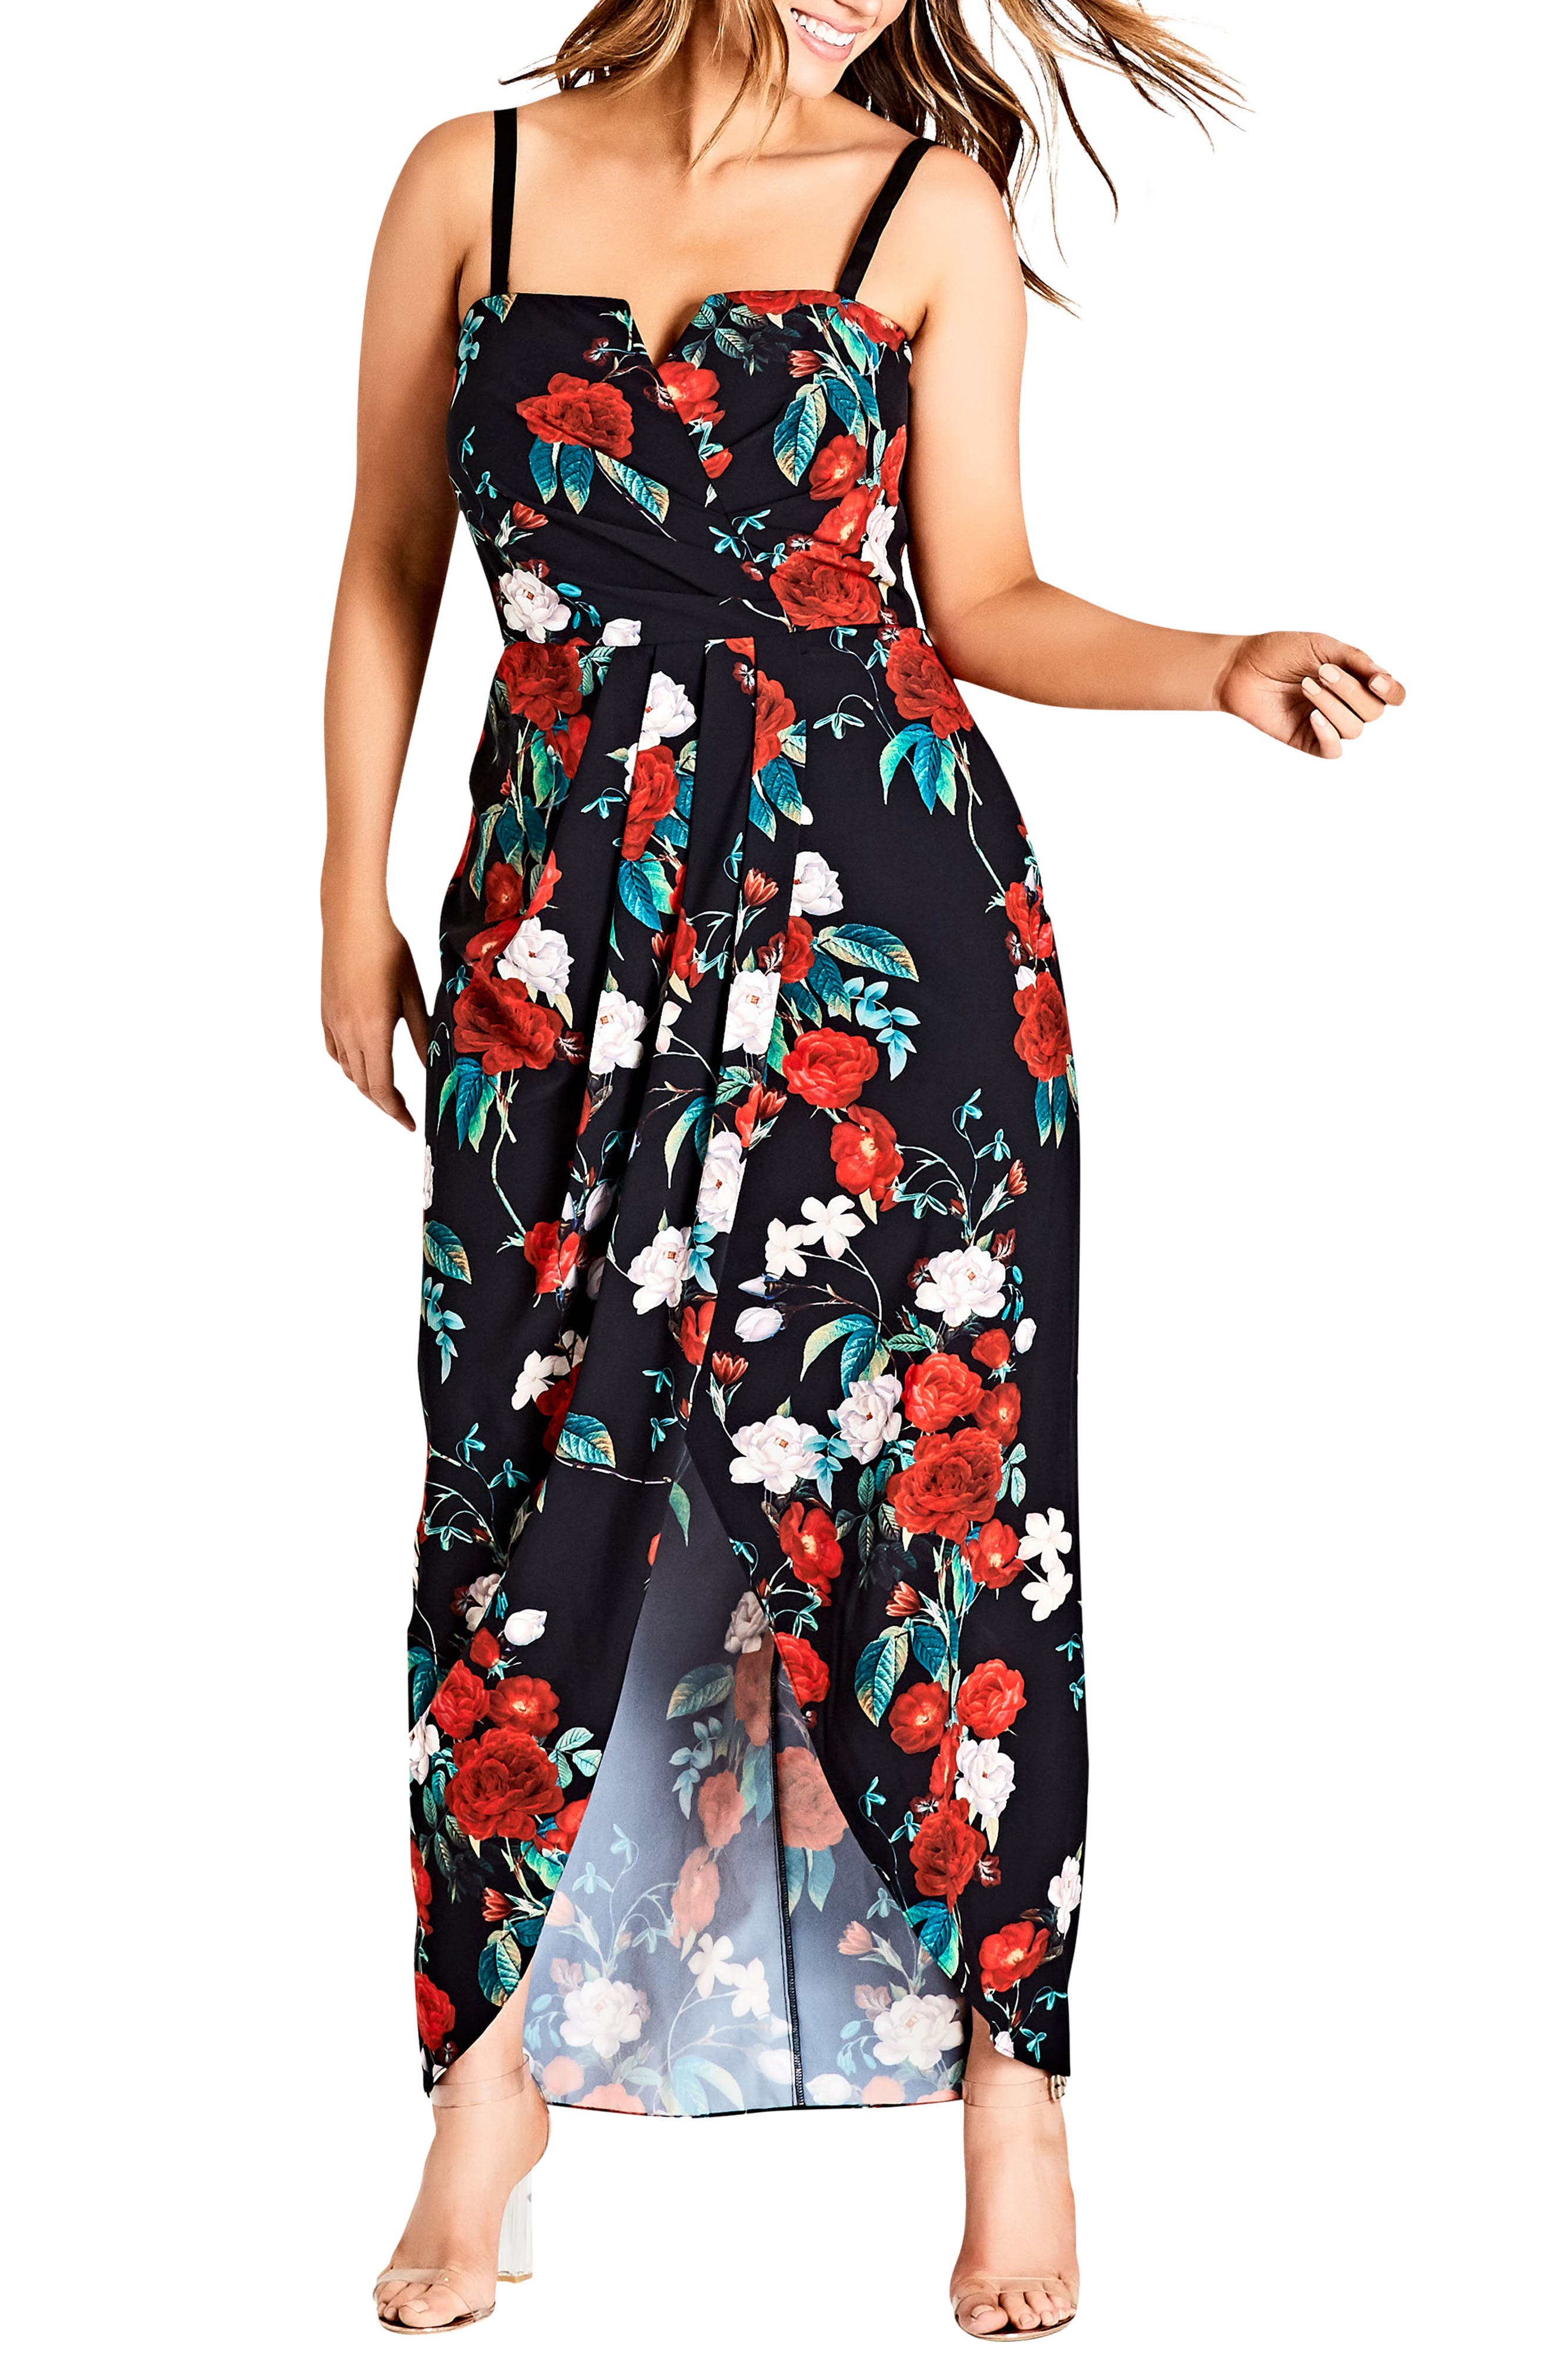 Come Hither Maxi Dress,                             Alternate thumbnail 3, color,                             001